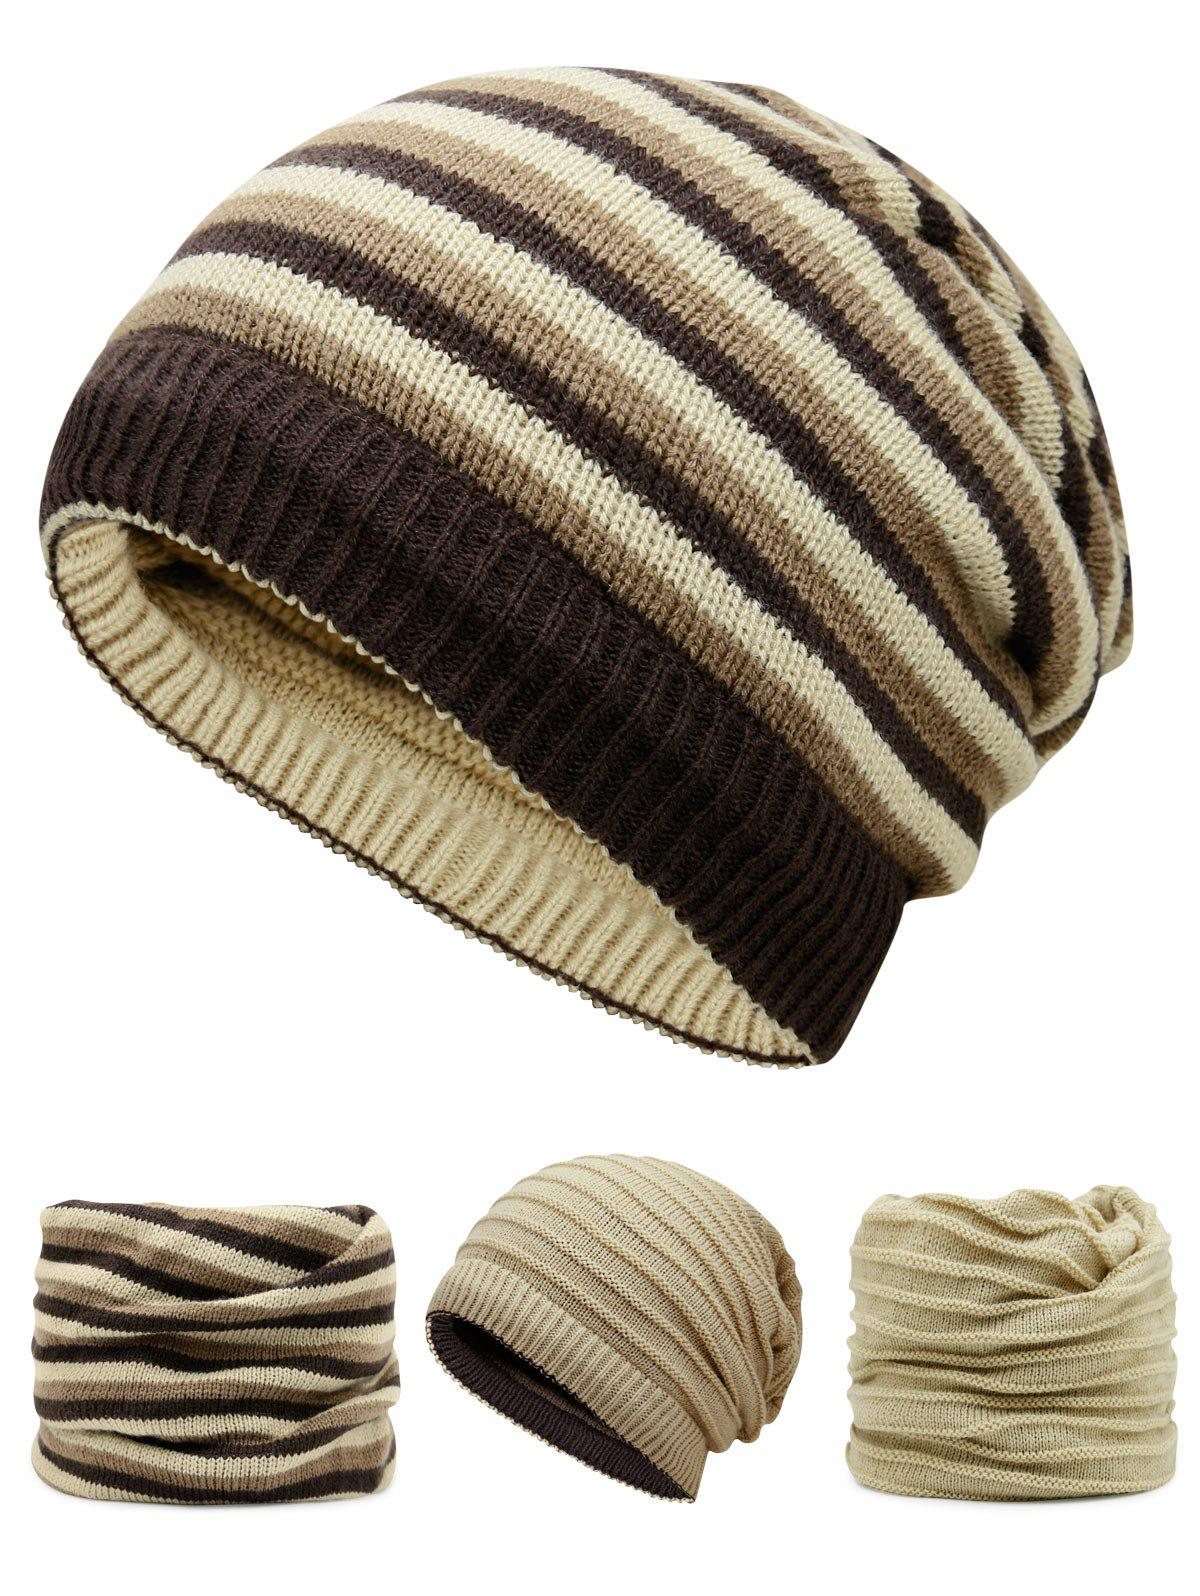 Open Top Decorated Reversible Crochet Knitted Beanie hot winter beanie knit crochet ski hat plicate baggy oversized slouch unisex cap